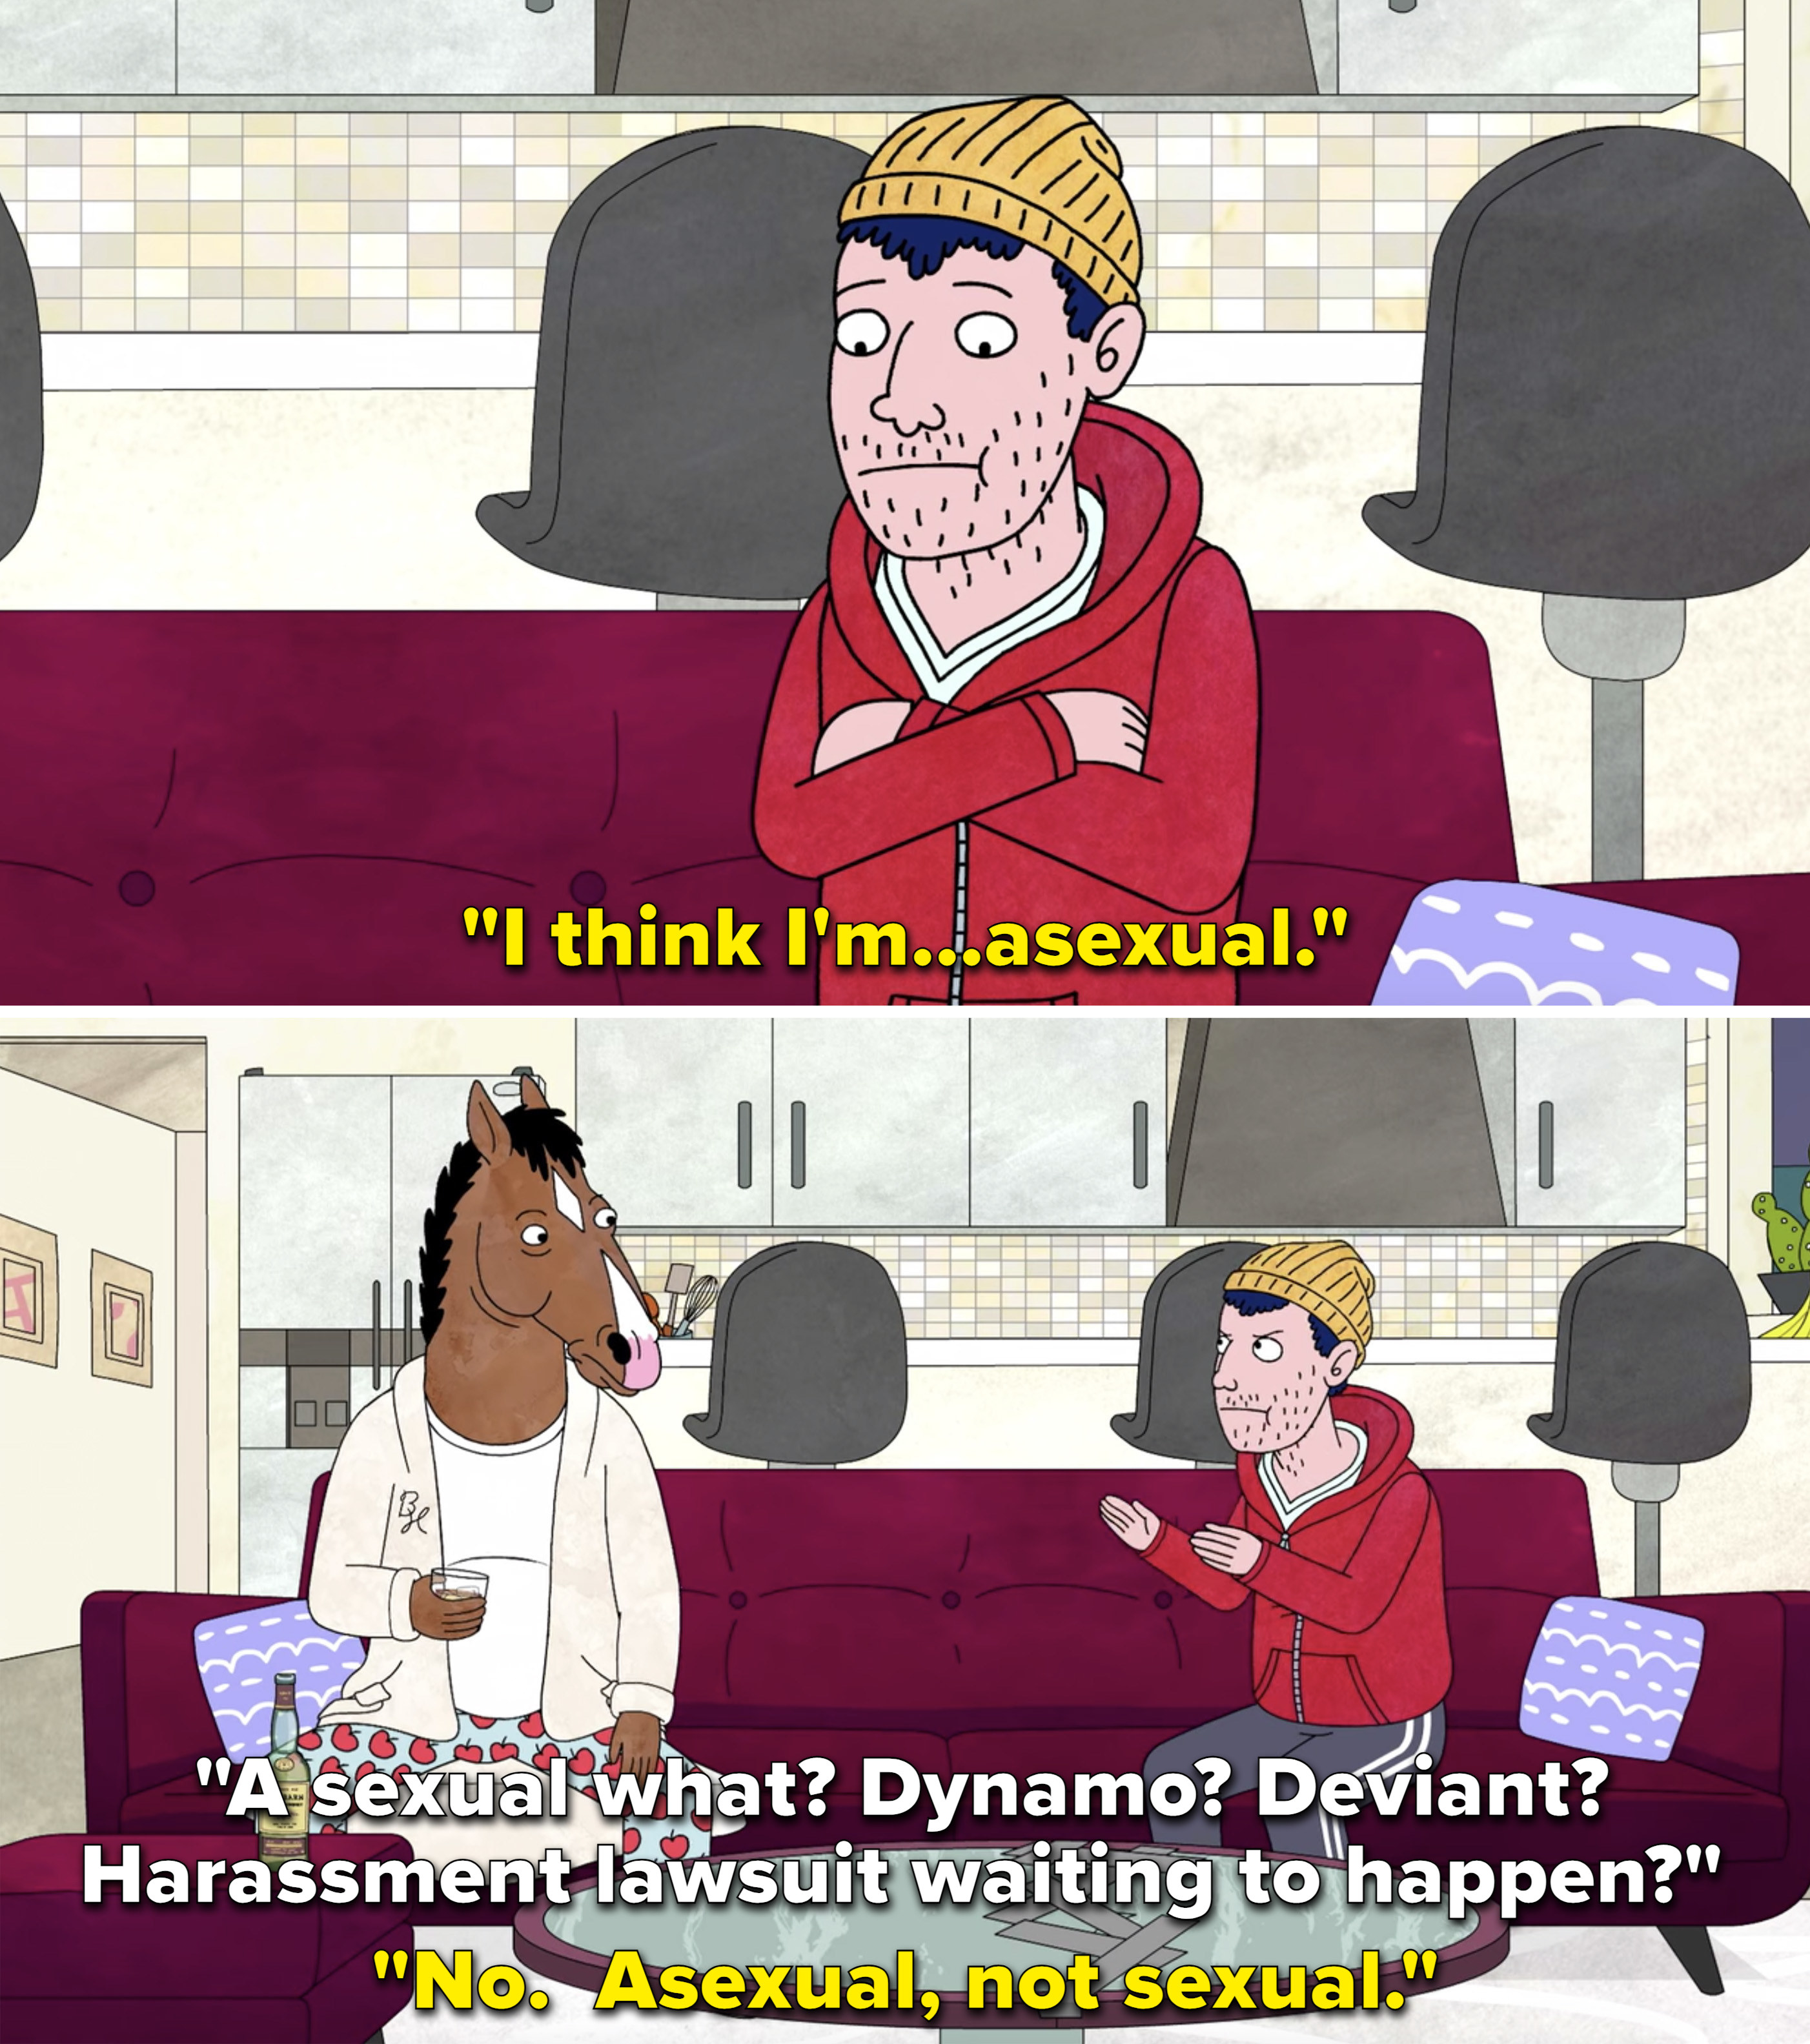 """Todd saying, """"I think I'm asexual,"""" and BoJack responding, """"A sexual what? Dynamo? Deviant? Harassment lawsuit waiting to happen?"""""""